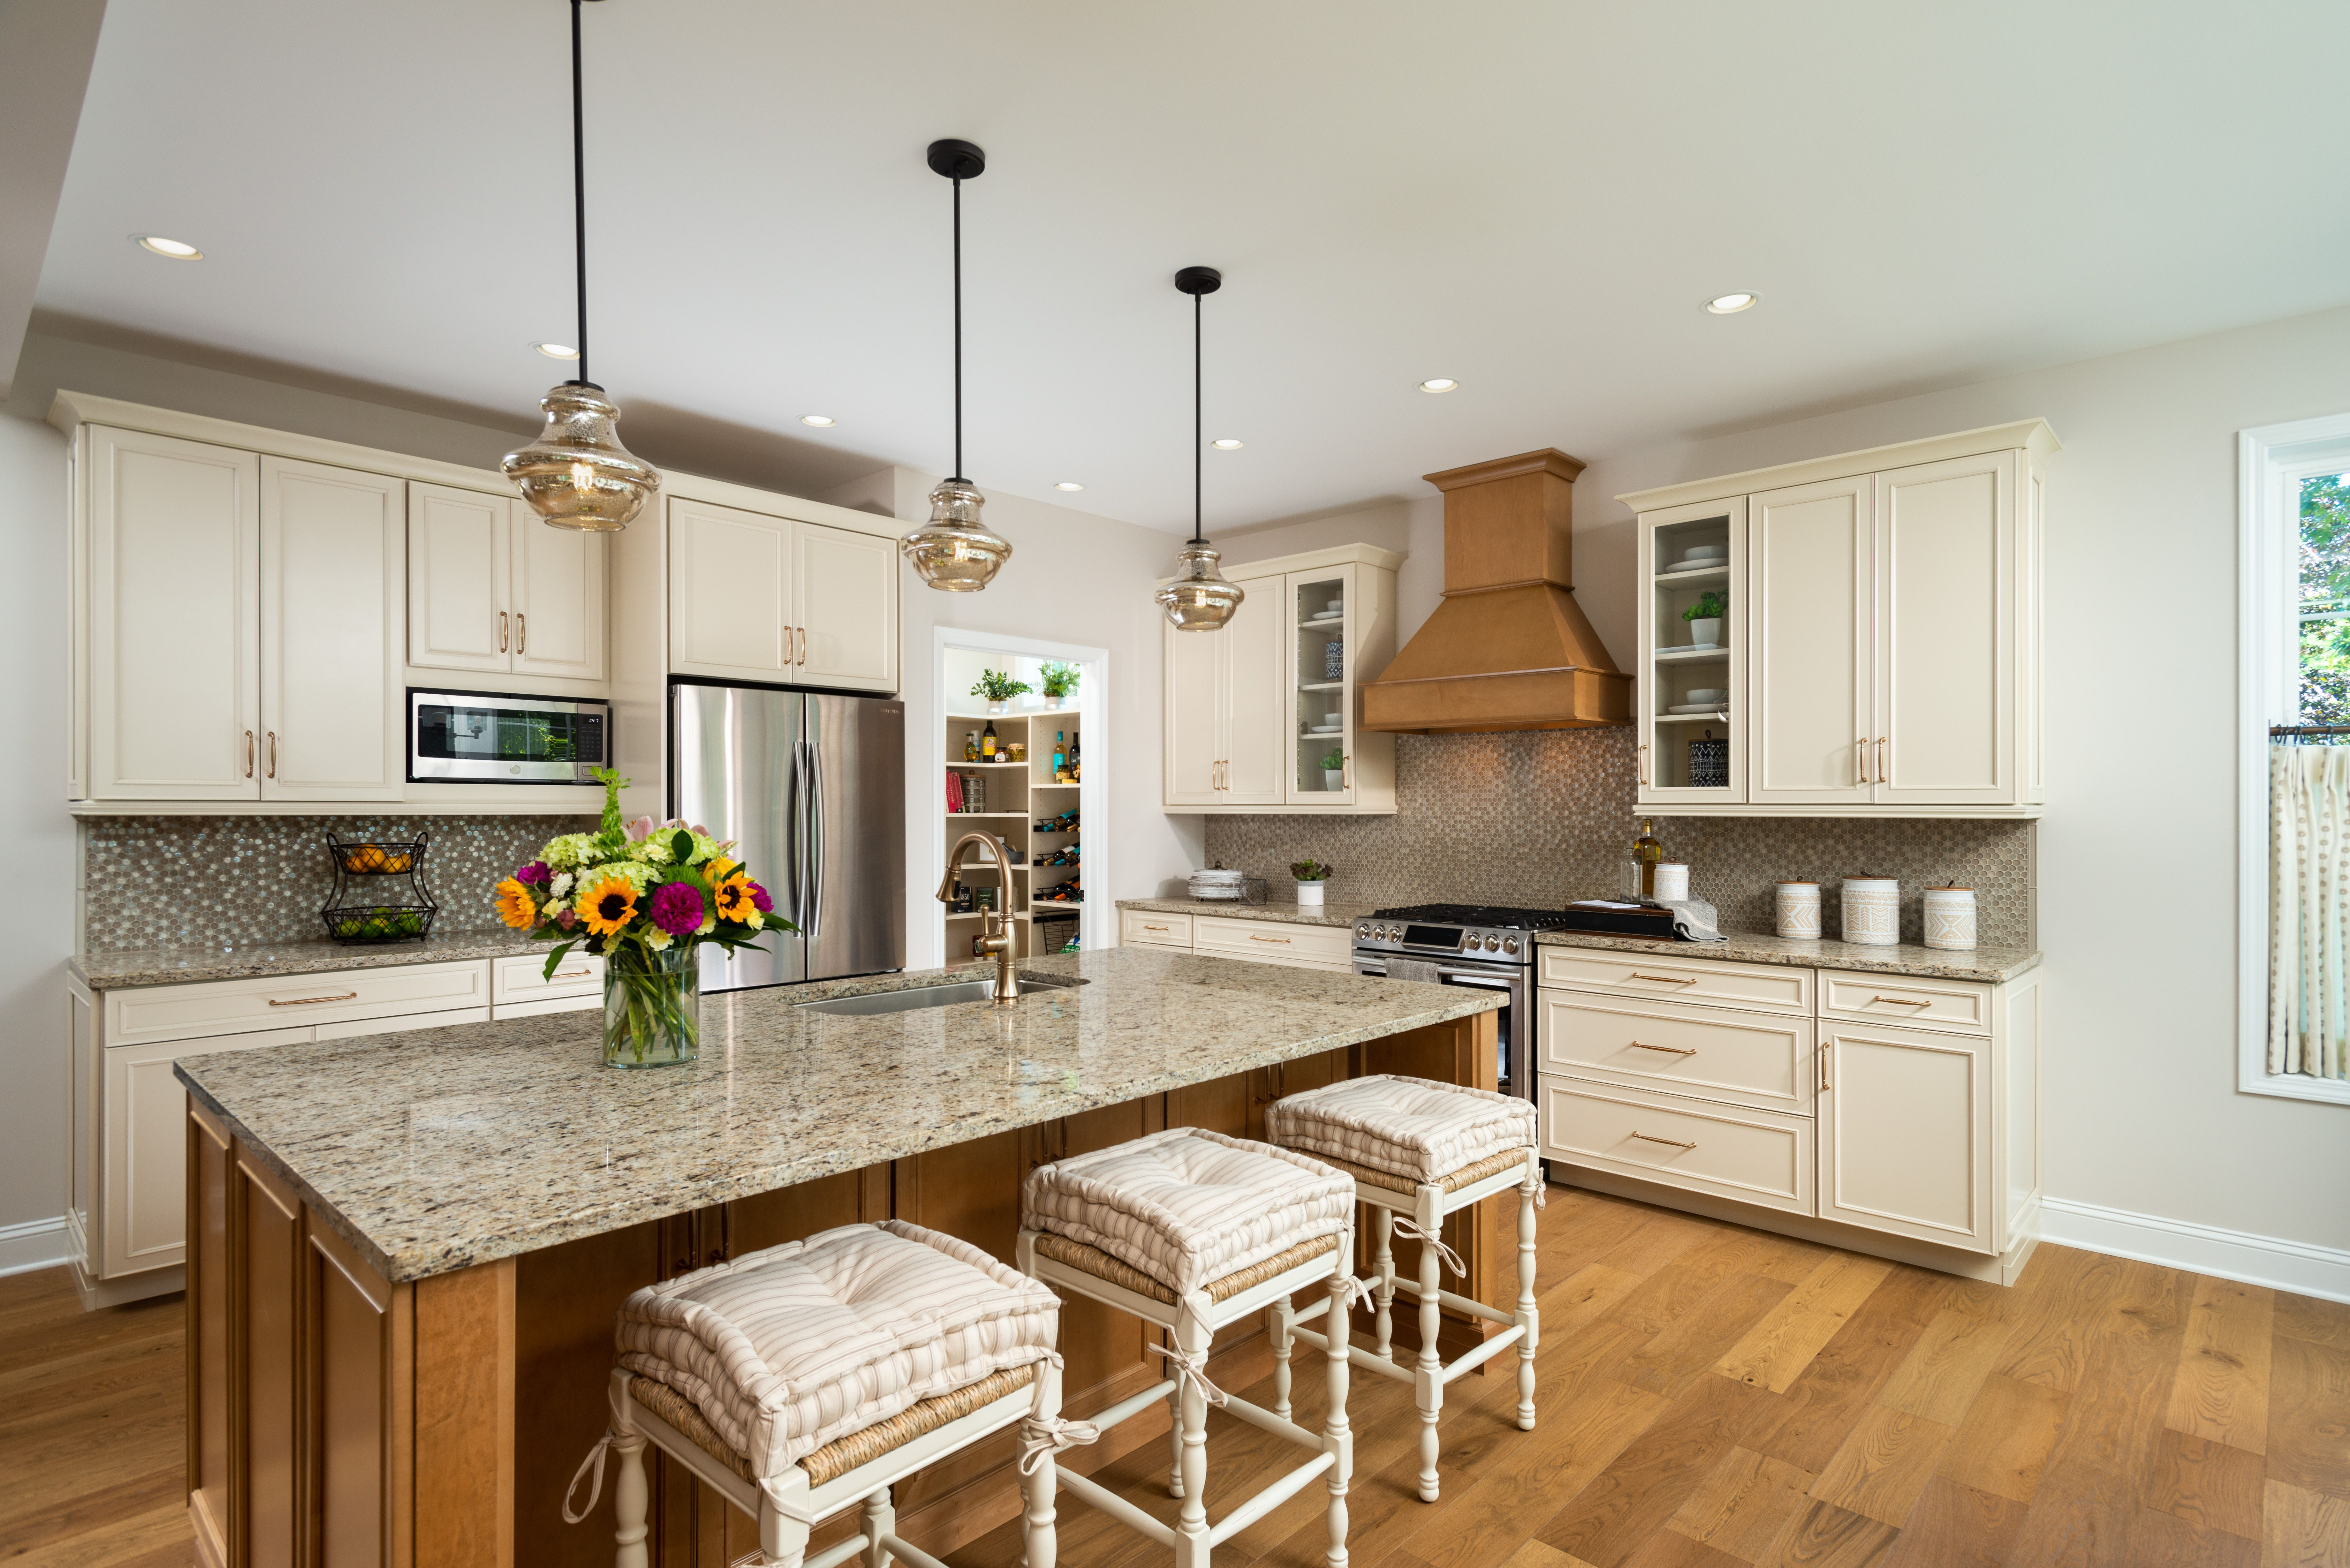 Kitchen featured in the Weston By Belmonte Builders in Albany-Saratoga, NY